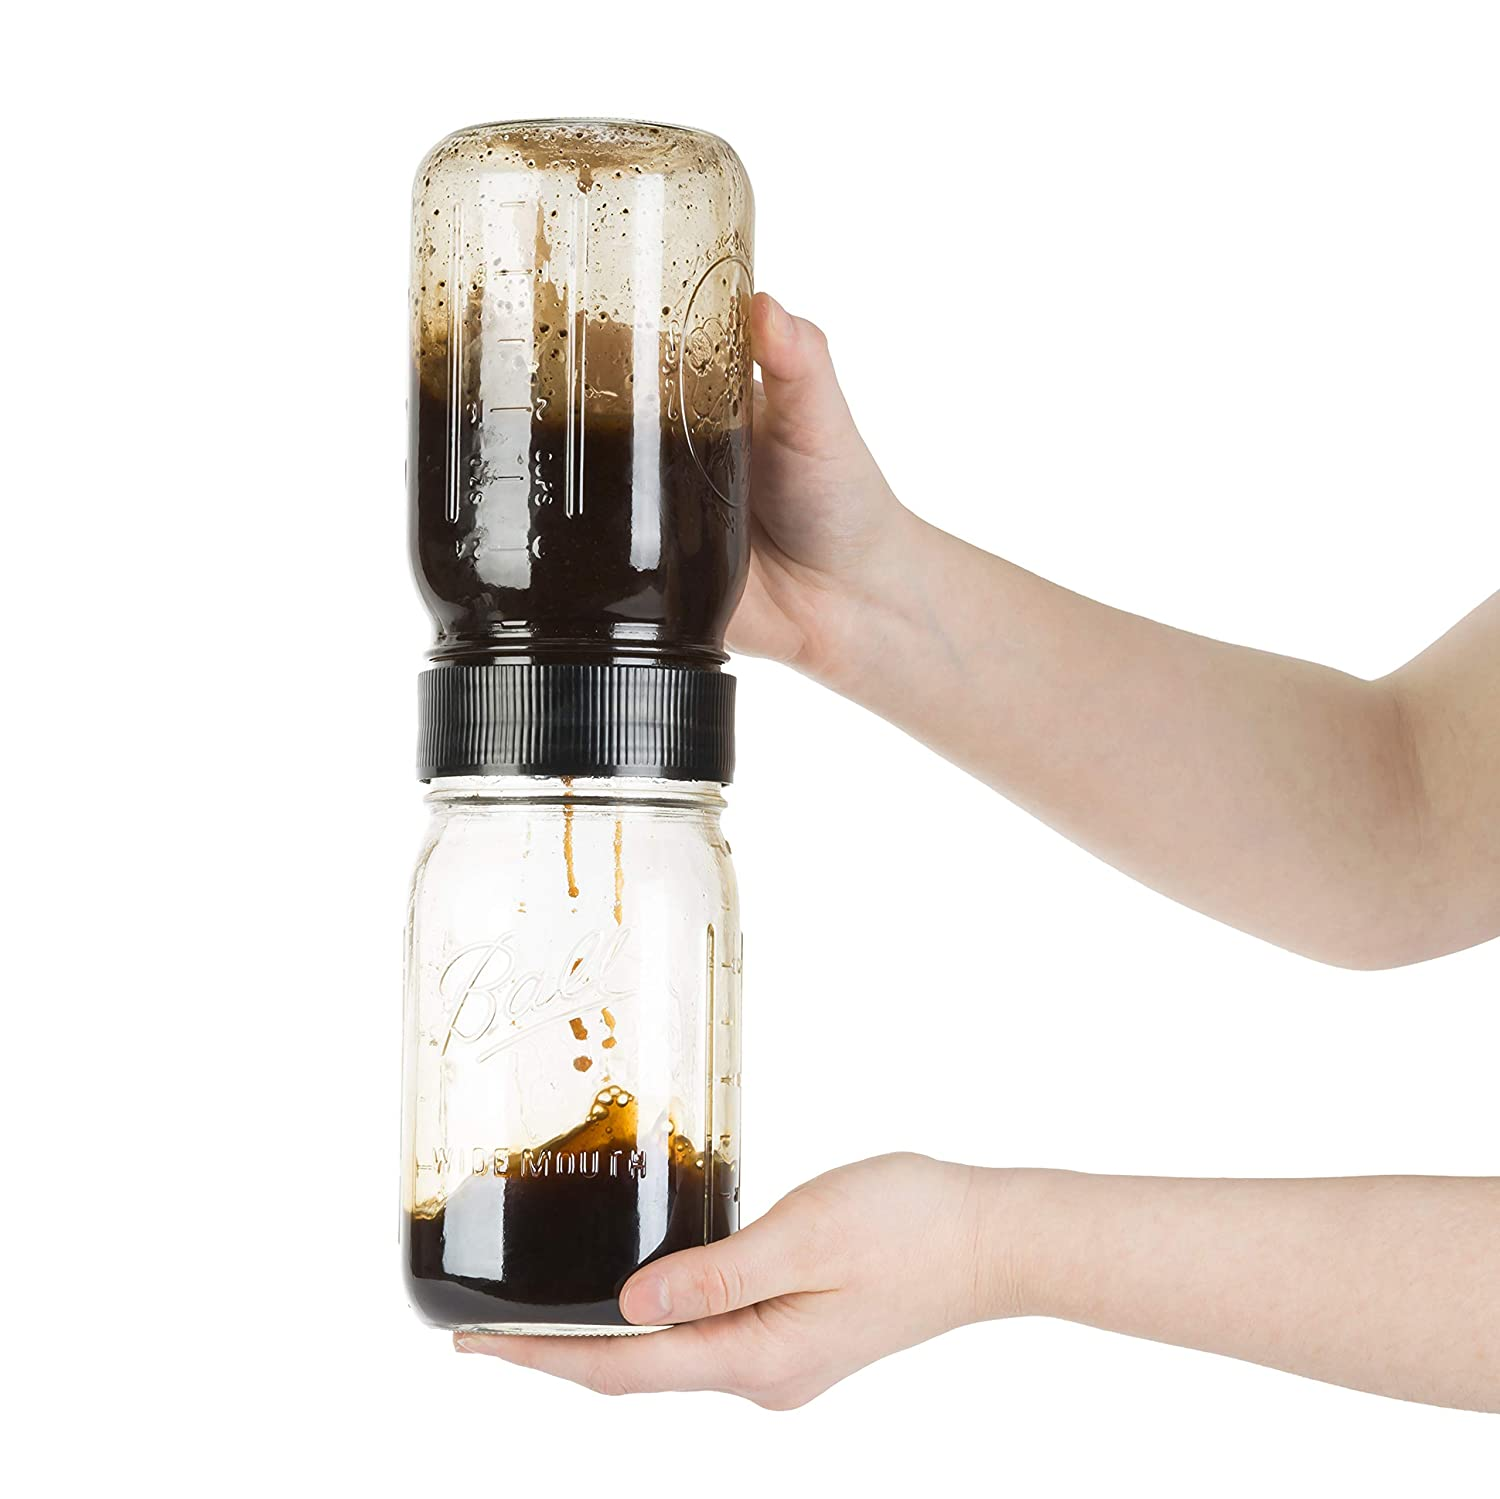 BRUW フィルター With Mason Jars Bruw-filter With Mason Jars BRUW Filter B01BI6OL6S